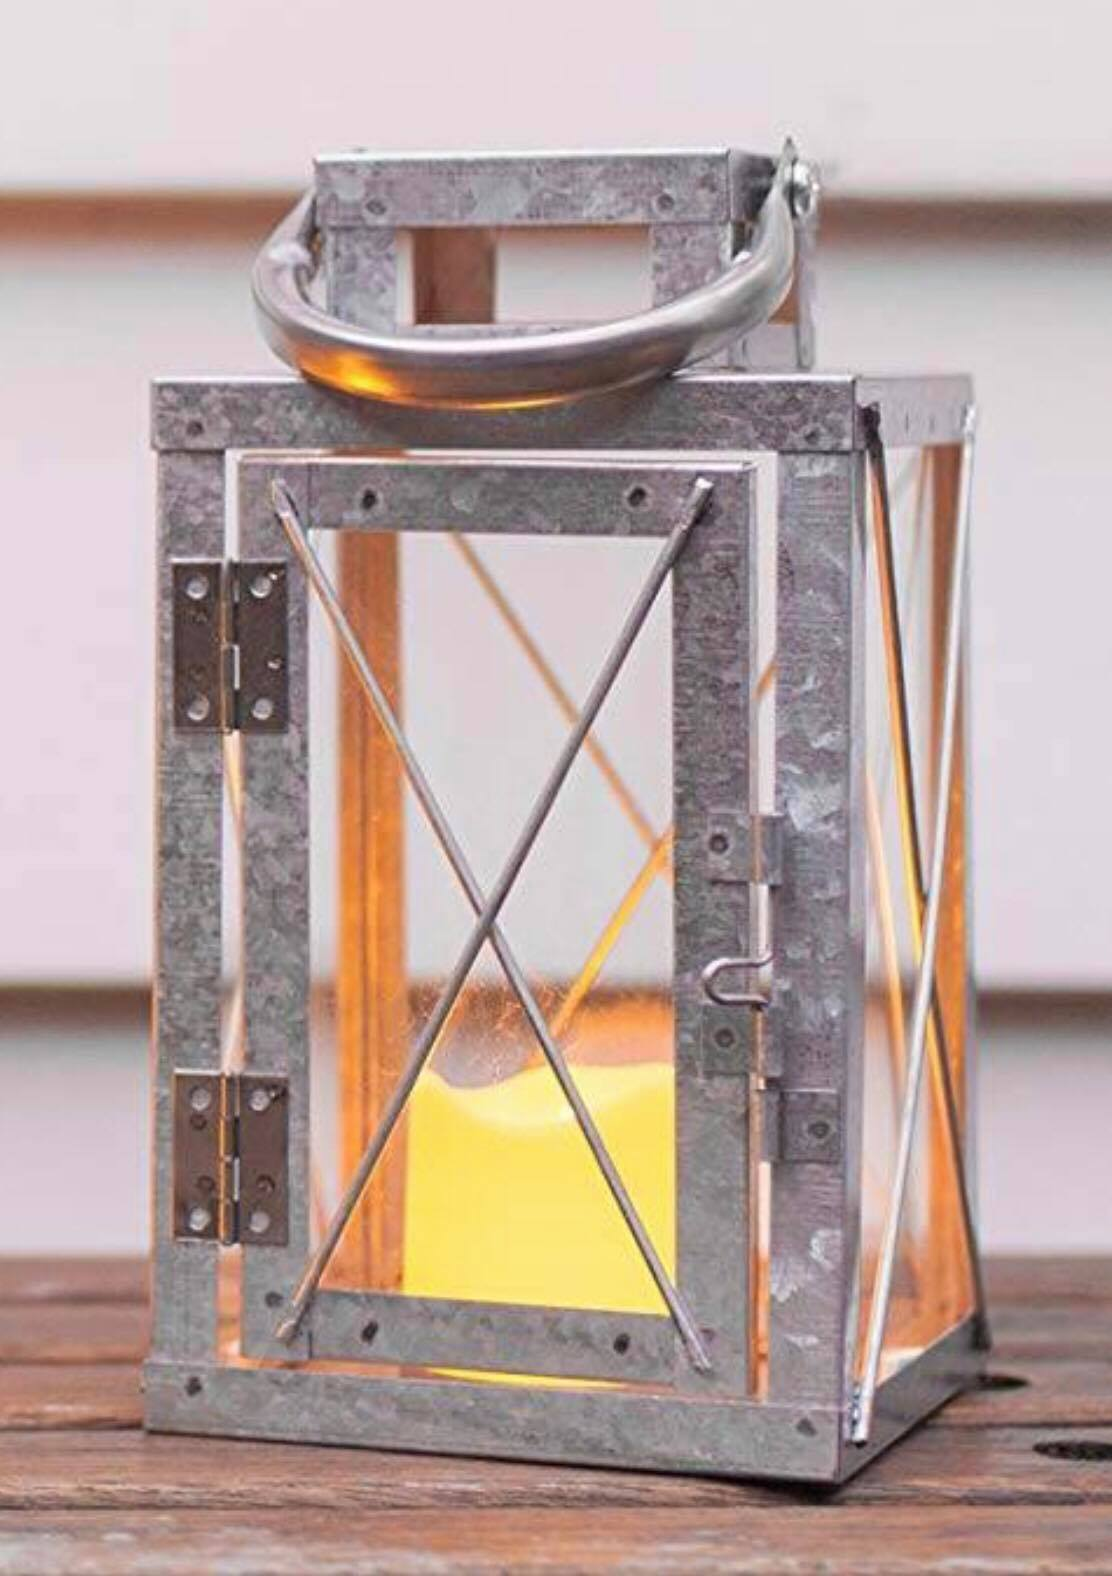 27 Galvanized Lanterns With Led Candles Included